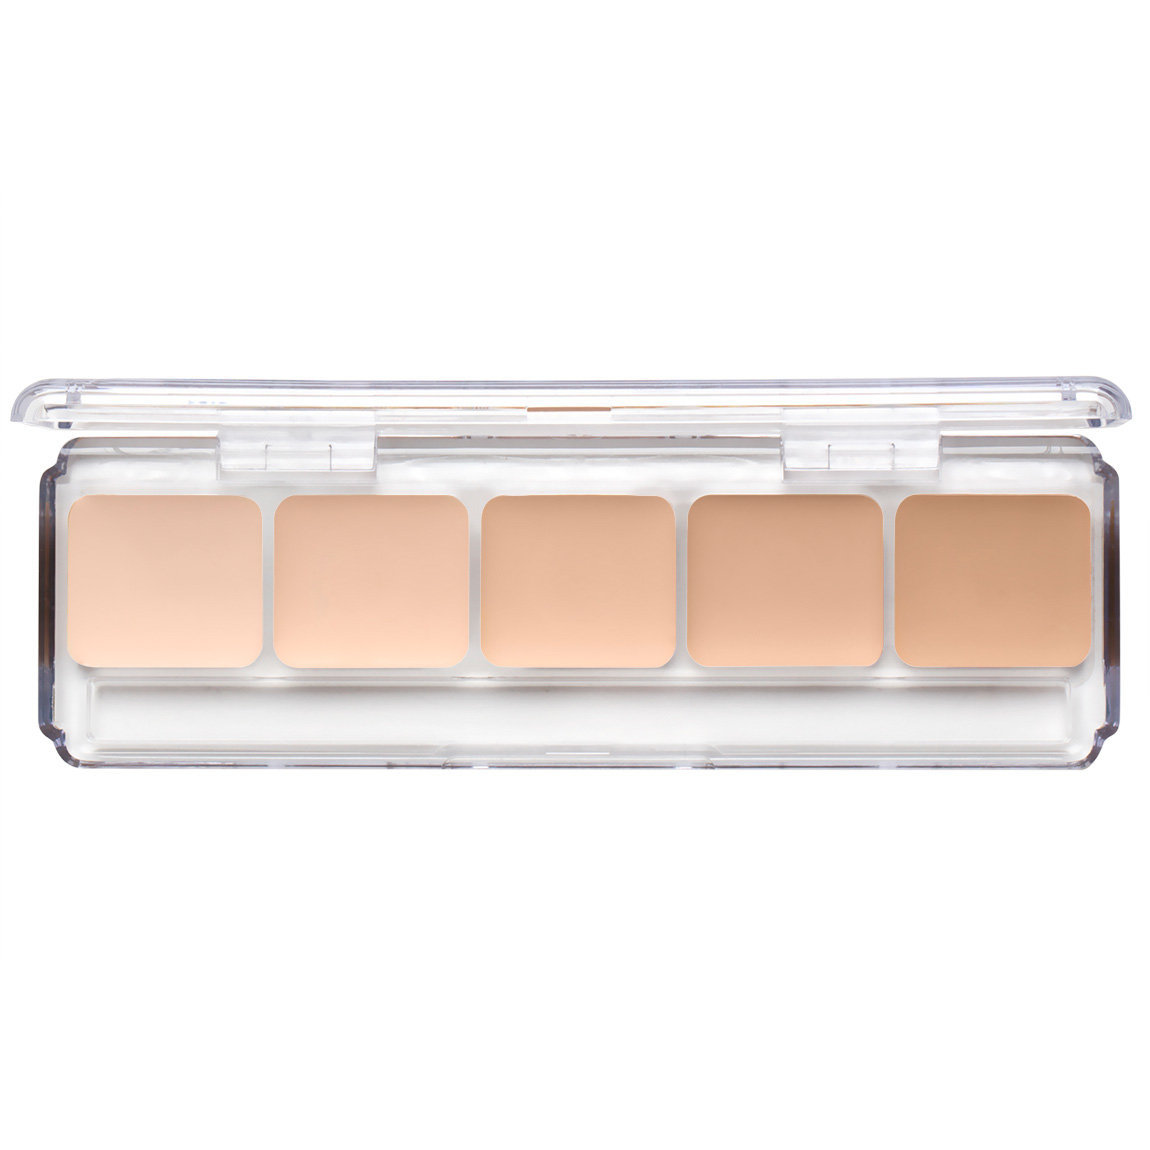 RCMA Makeup 5 Part Palette KA alternative view 1.